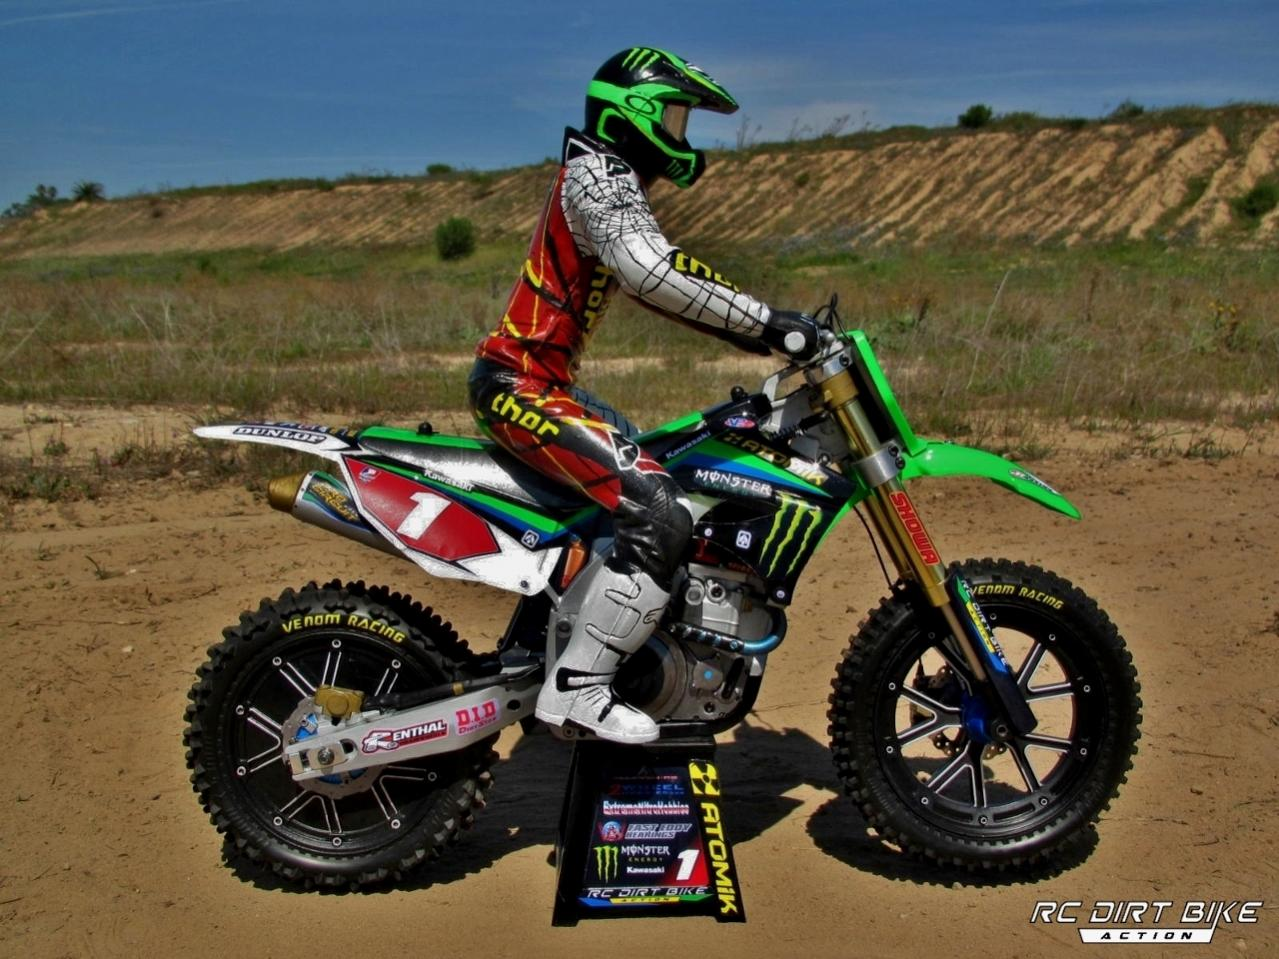 2013 replica ryan villopoto 1 4 rc dirt bike r c tech forums. Black Bedroom Furniture Sets. Home Design Ideas